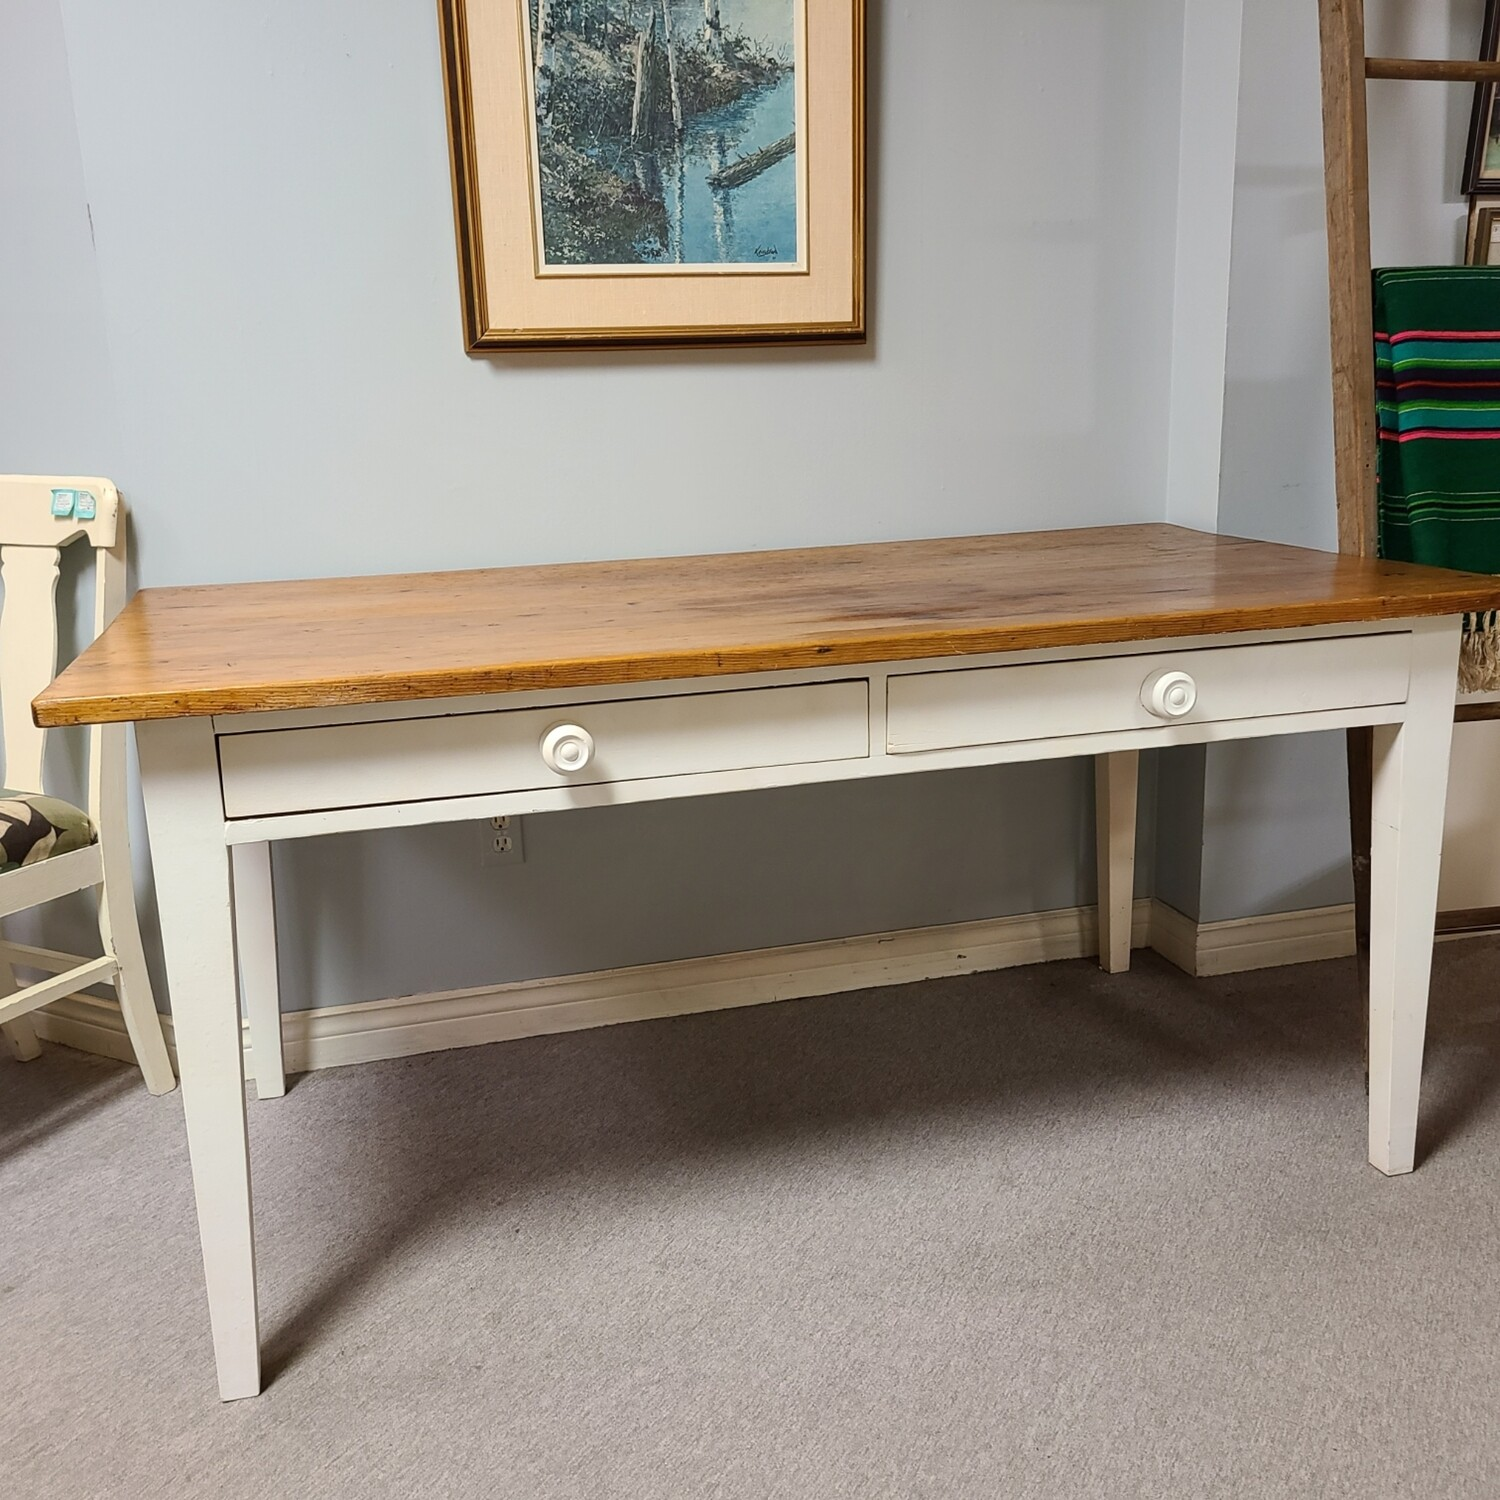 Pine Top Harvest Table with Large Drawers